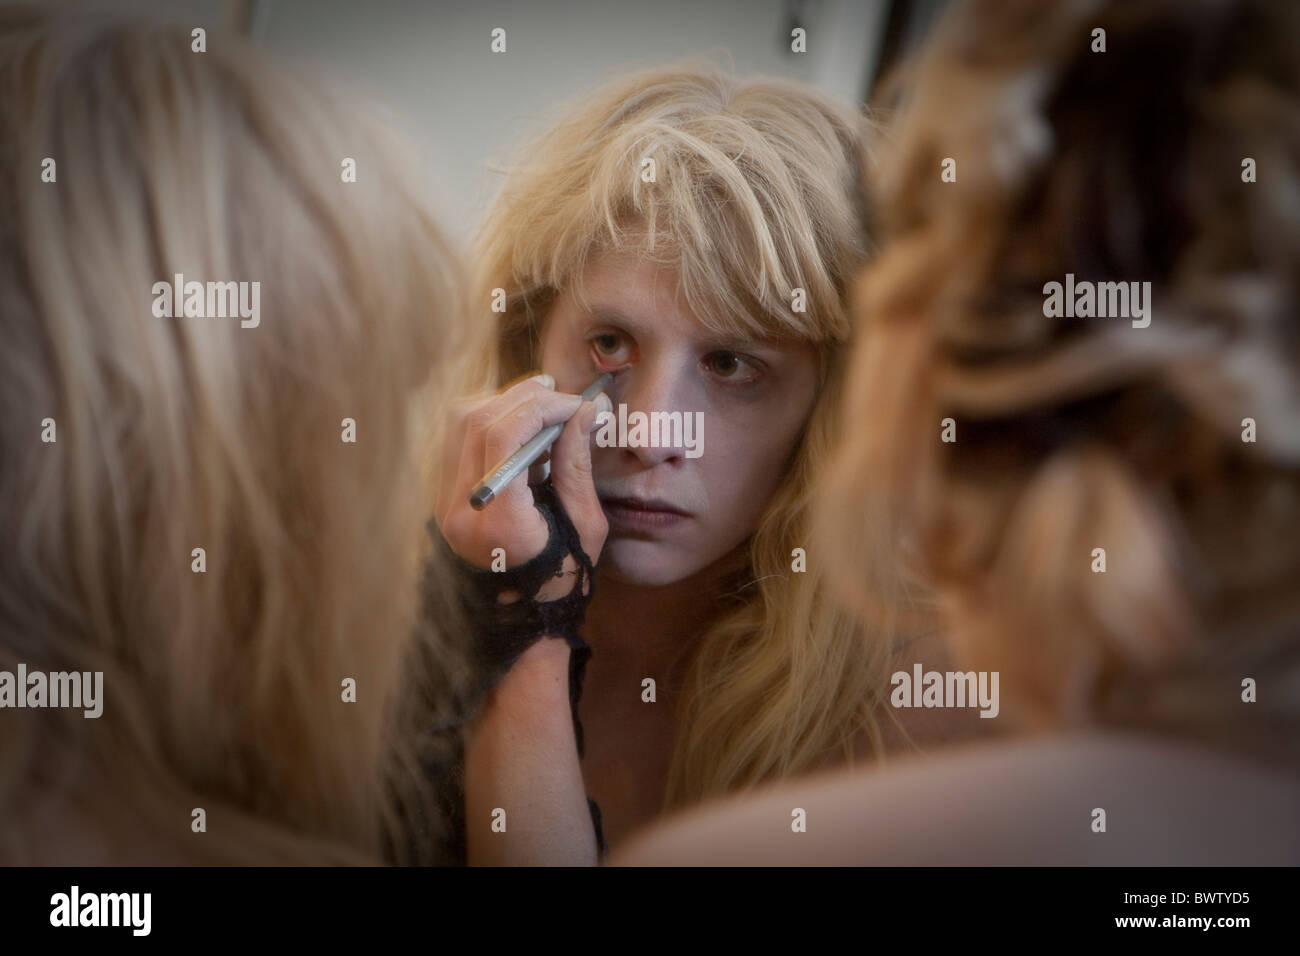 zombie girl does Halloween make-up in mirror - Stock Image